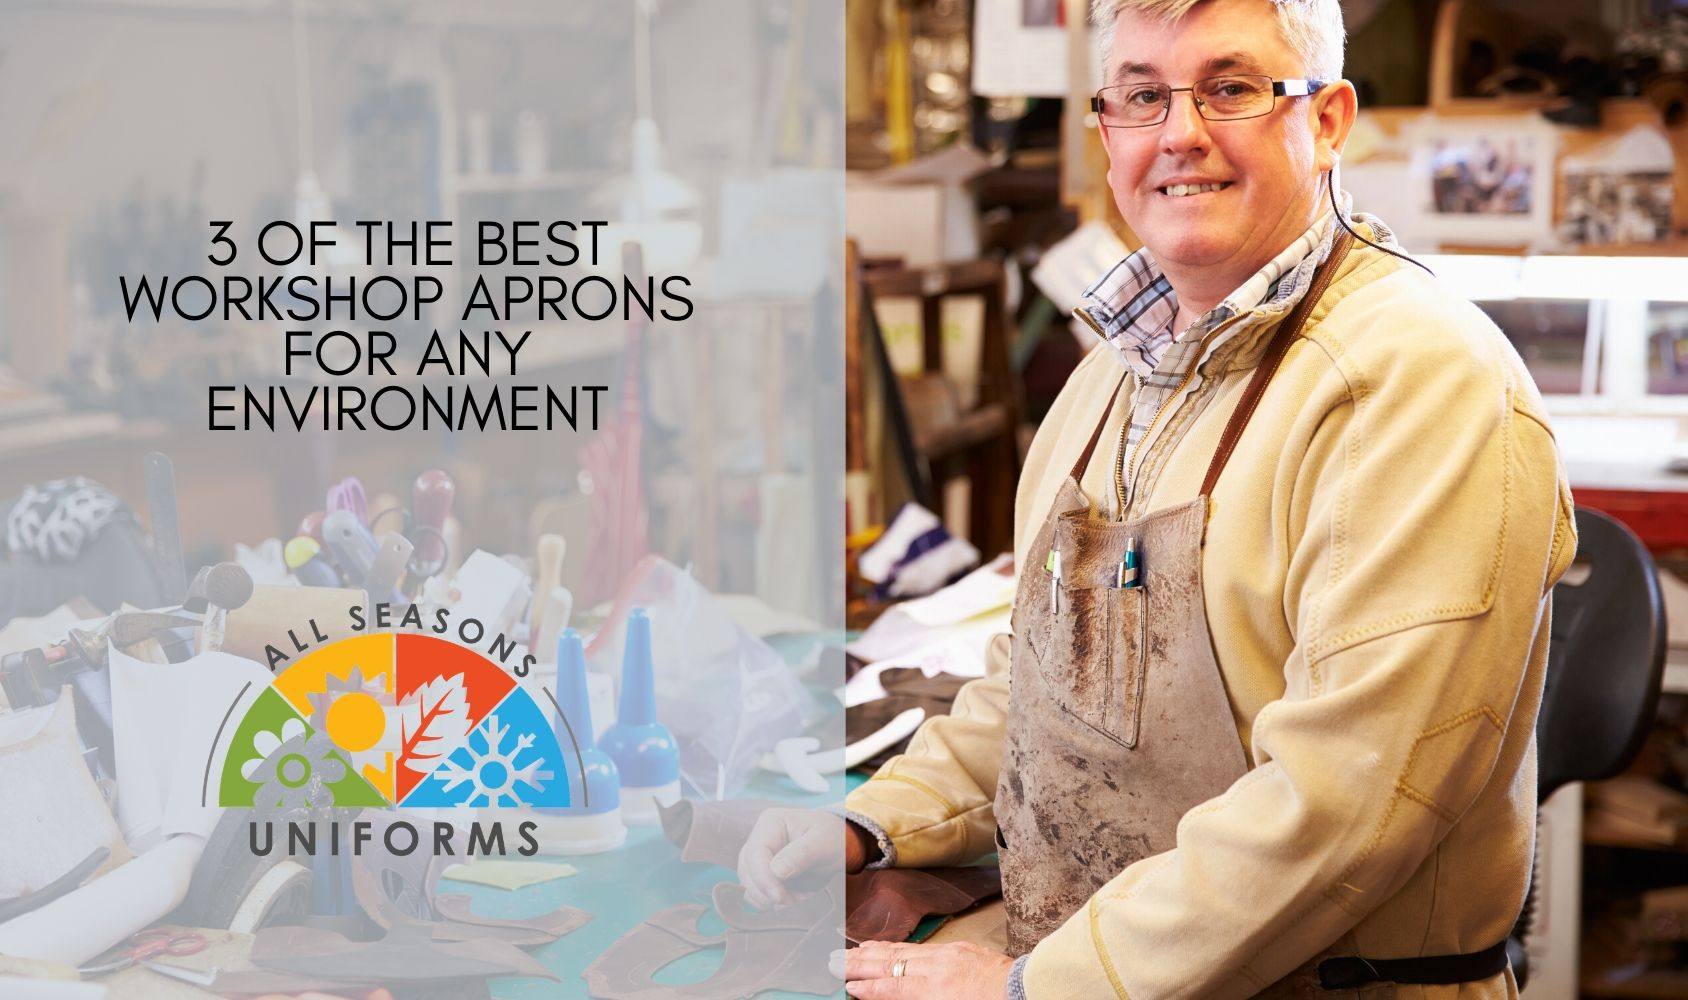 3 of the Best Workshop Aprons for Any Environment